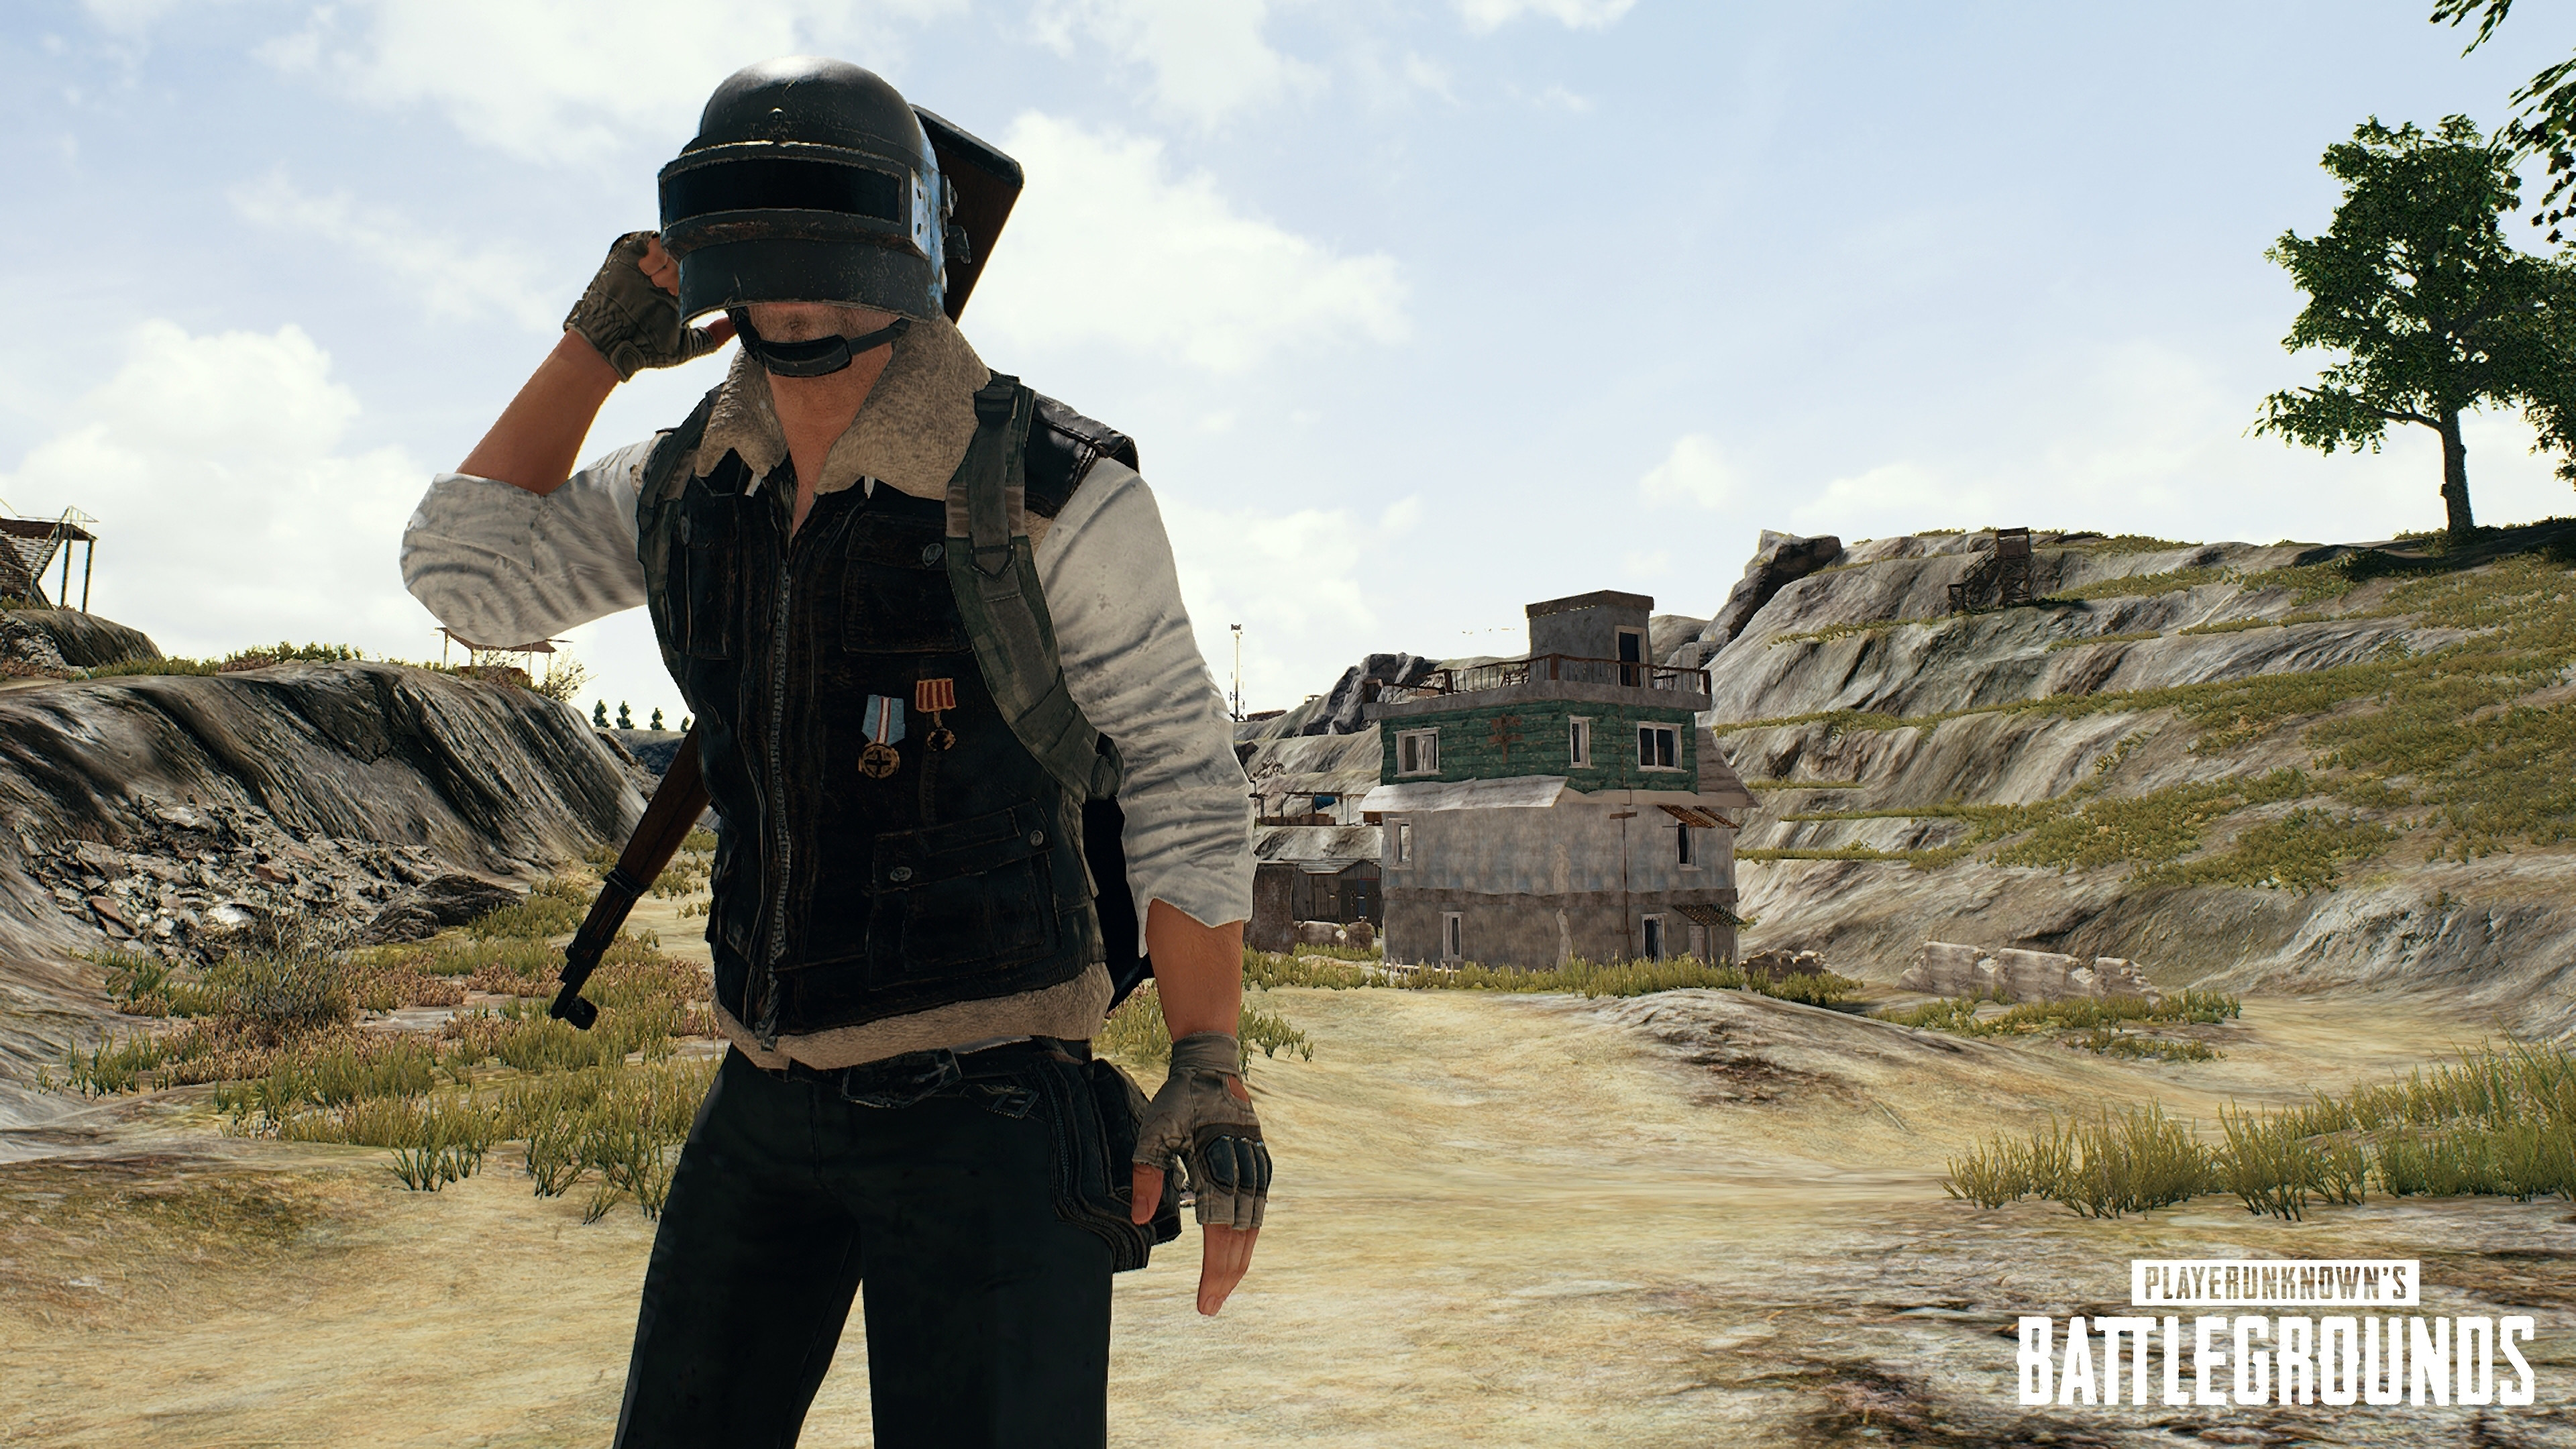 Pubg Christmas Wallpaper: PUBG PUBG PlayerUnknown's Battlegrounds 4K Wallpaper